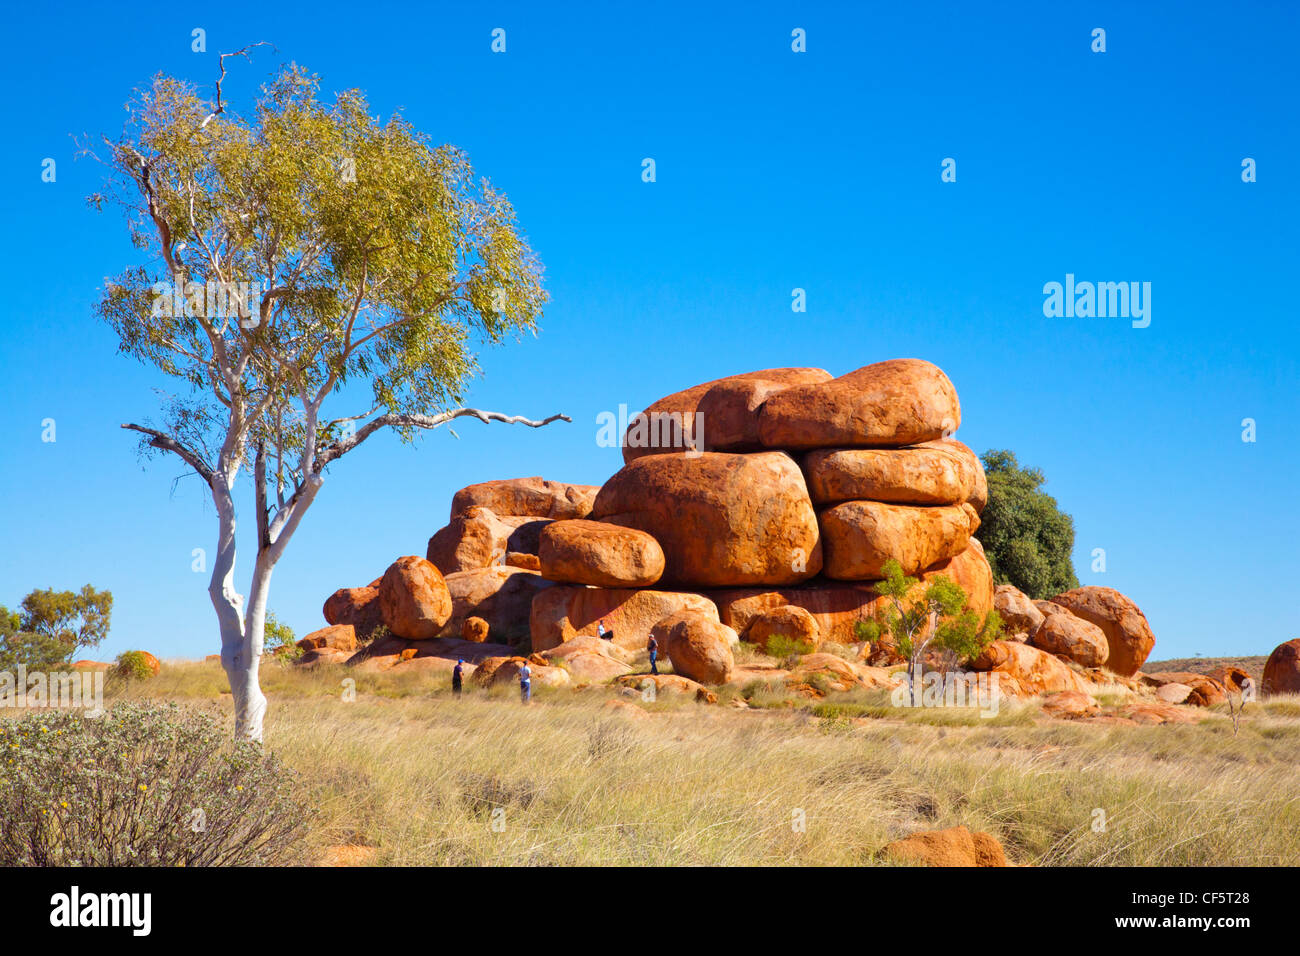 Devils Marbles, rock formations in the Northern Territory, Australia, with tourists clambering on them. - Stock Image